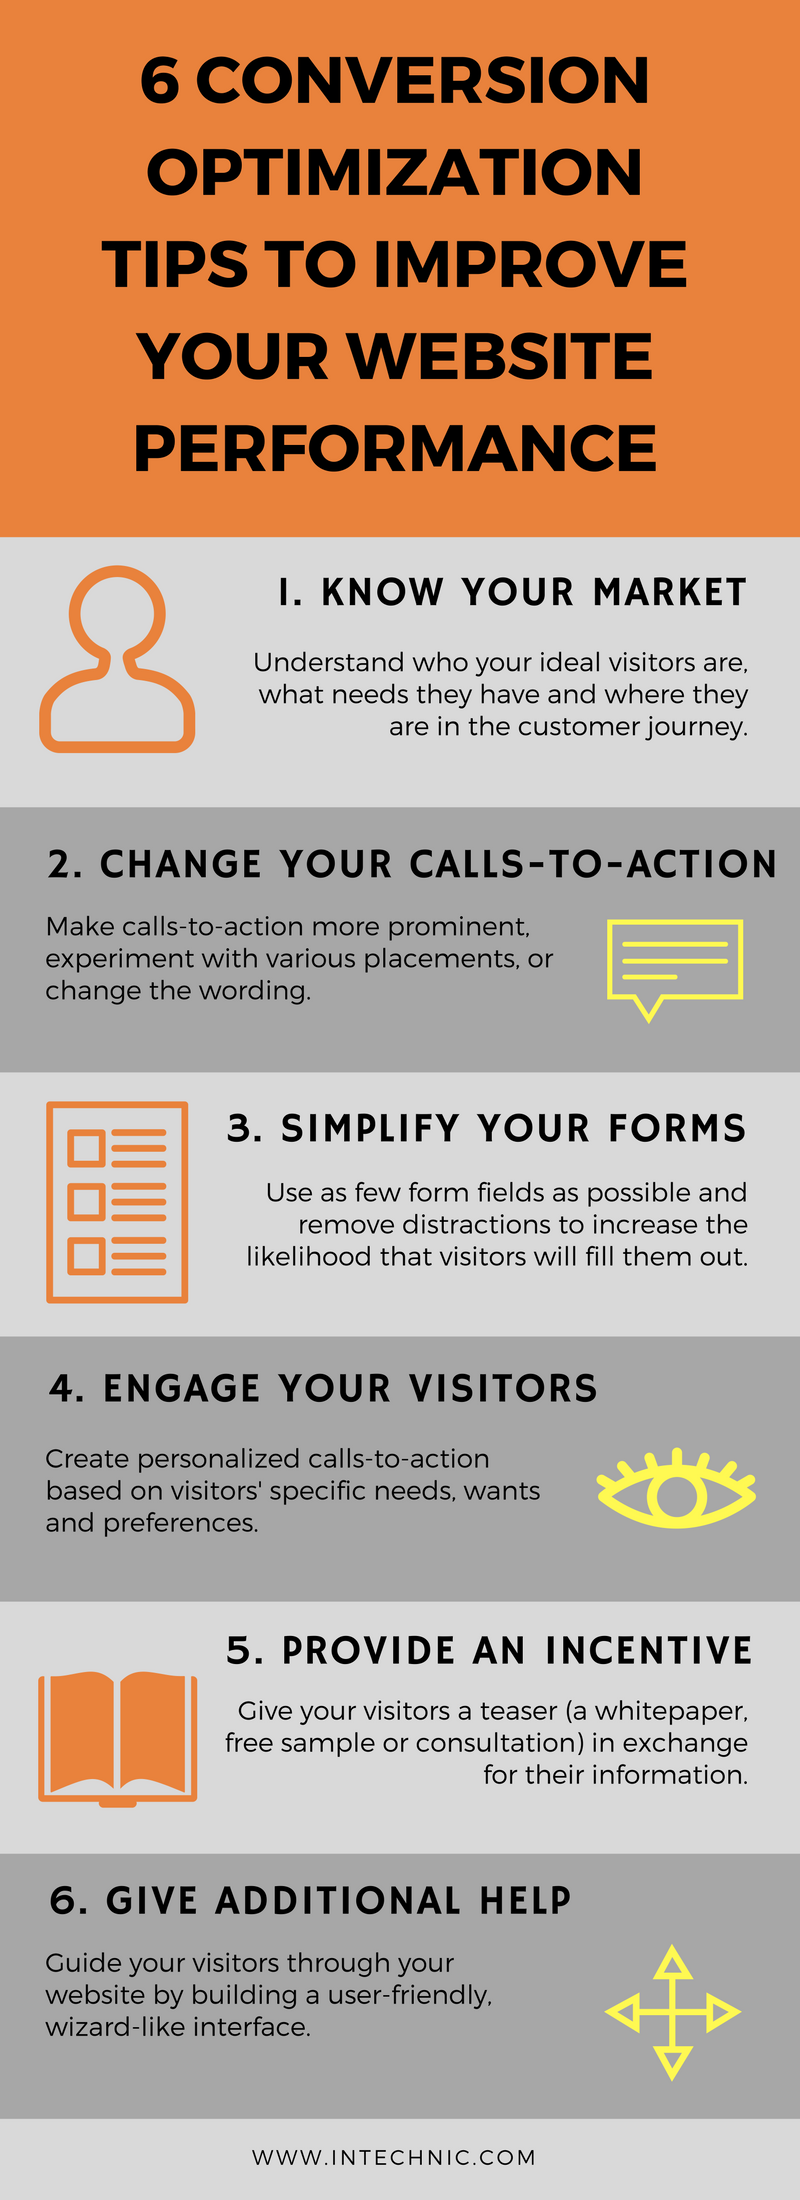 6 Conversion Optimization Tips - Infographic